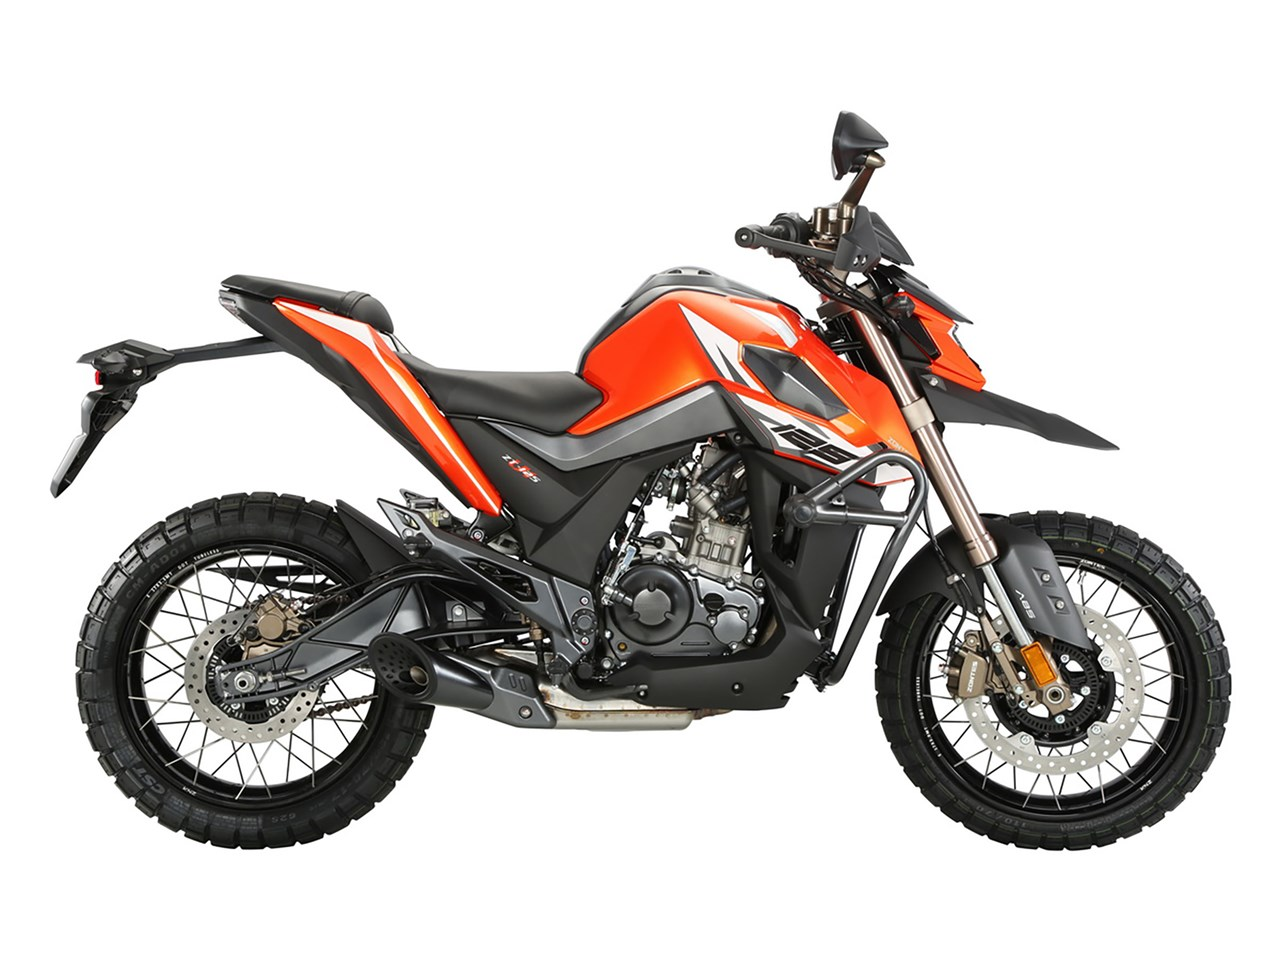 Zontes ZT125-U 125cc - Lowest Rate Finance Around - UK Delivery